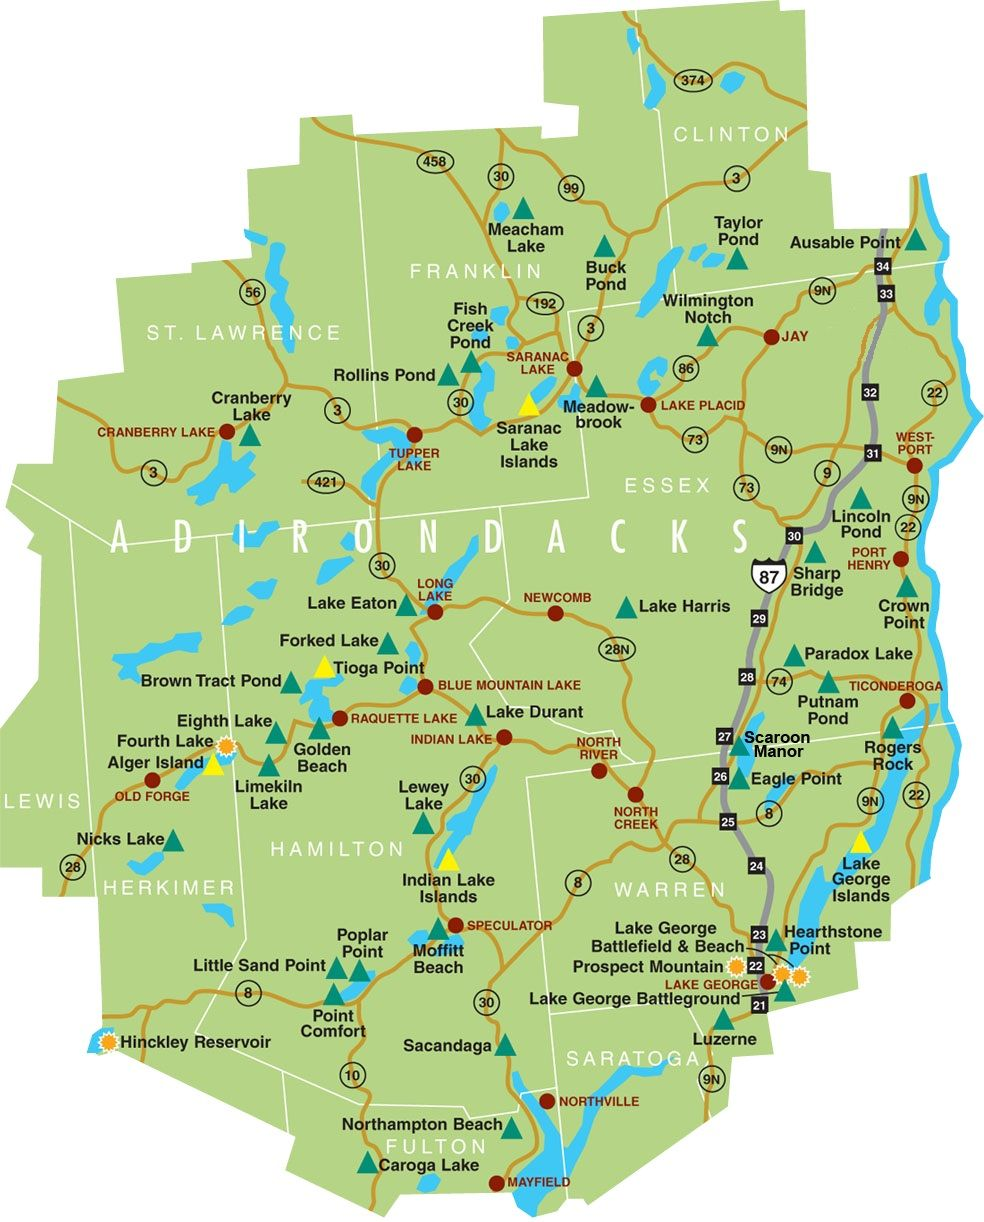 Map Of Adirondacks Large Map of the Adirondacks | Adirondacks, New York State in 2019